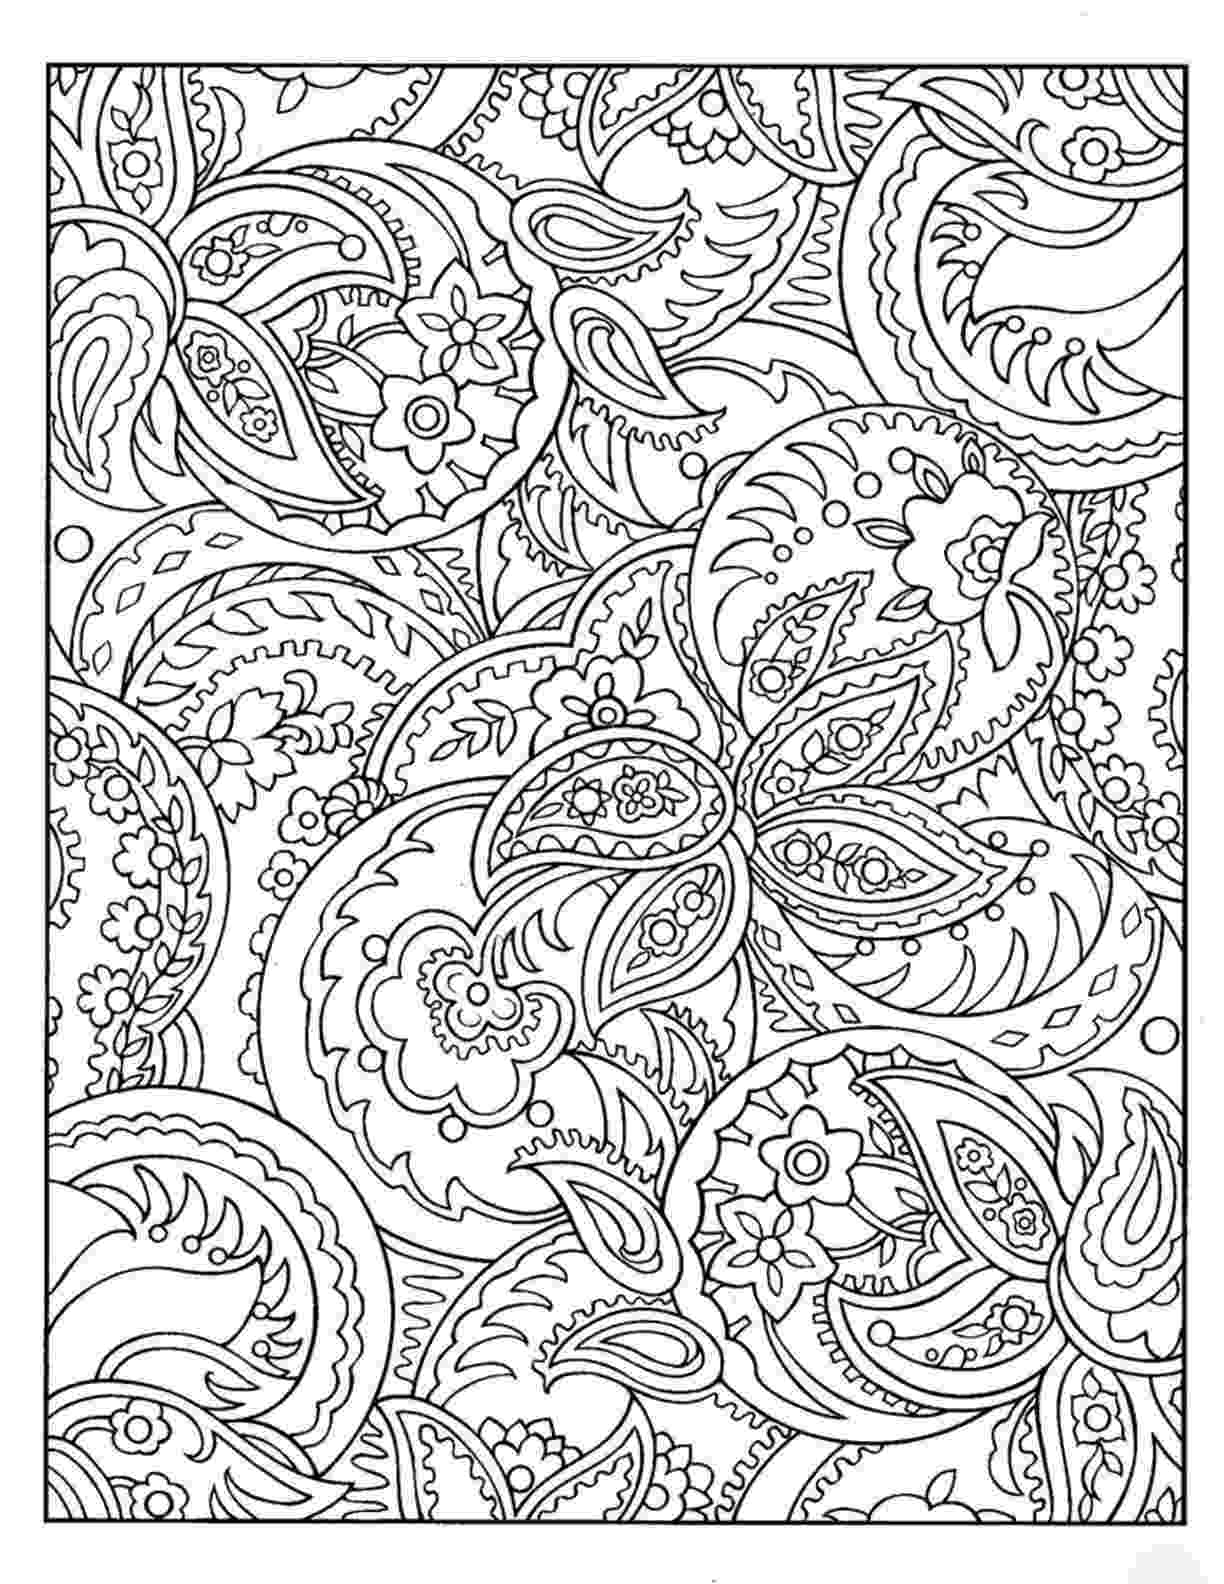 free printable pattern coloring pages pattern coloring pages best coloring pages for kids pages pattern printable coloring free